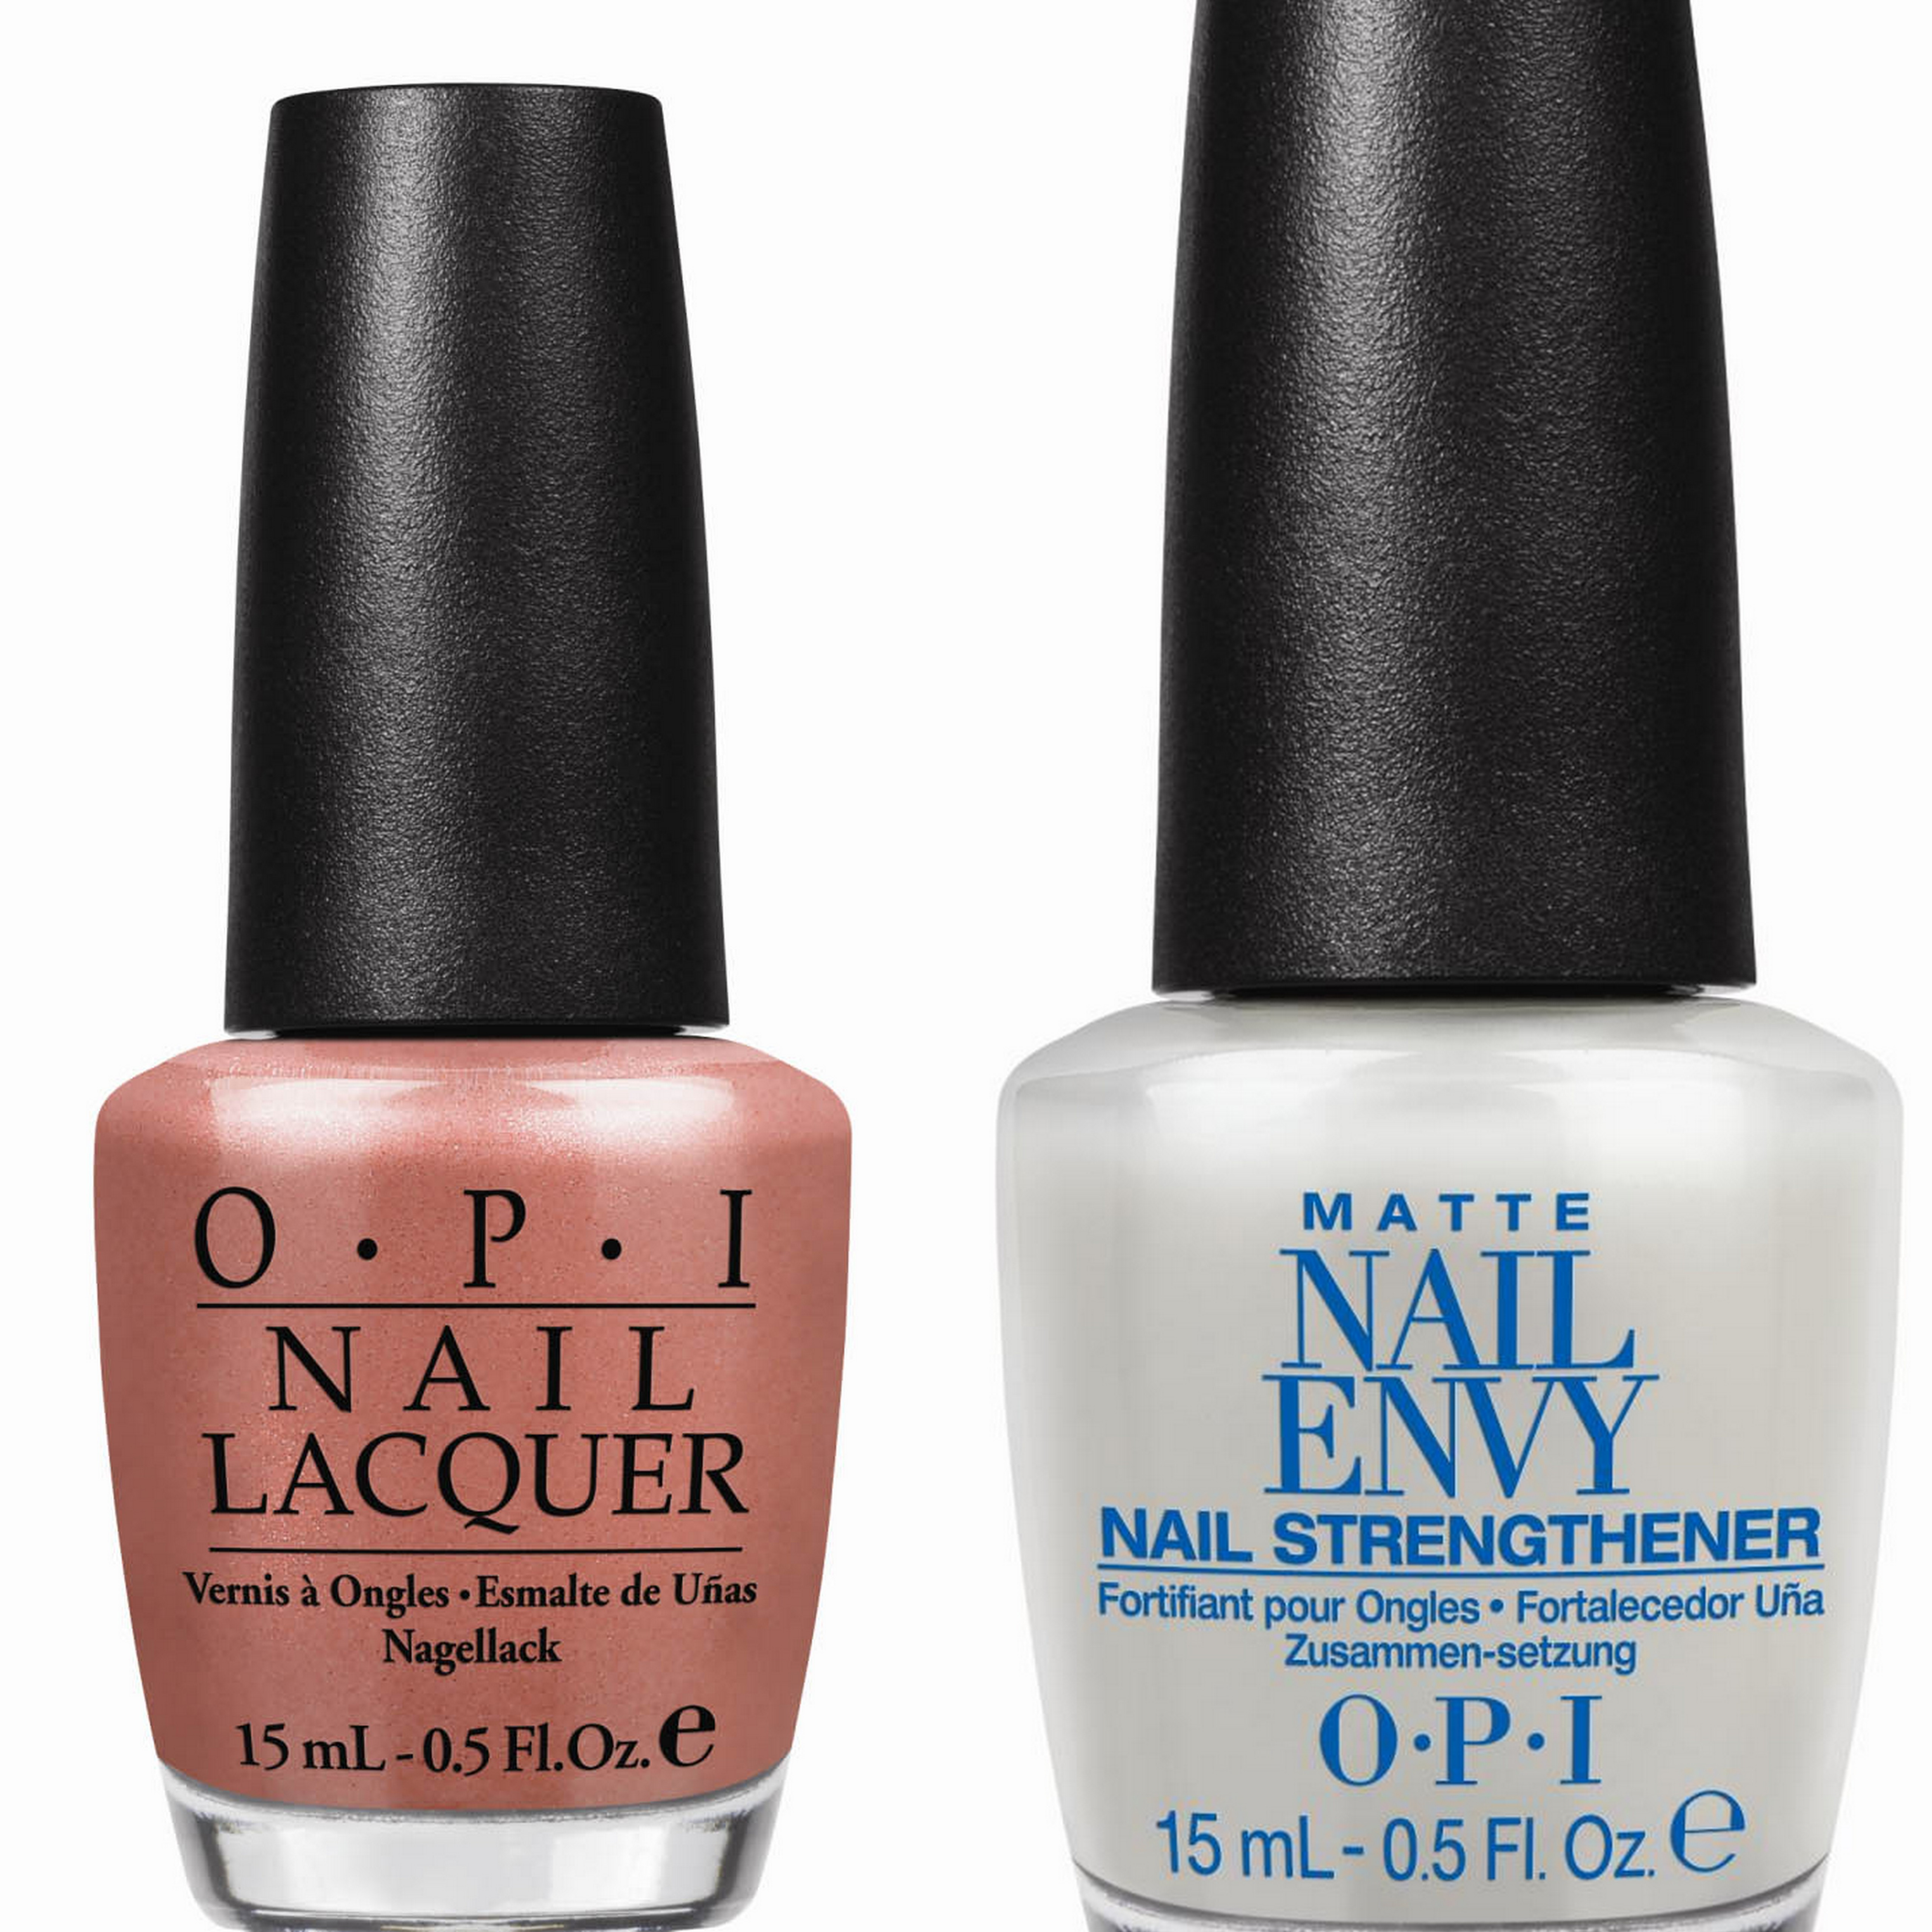 OPI Walks Red Carpet with Adele & Carrie Underwood at the Grammys ...